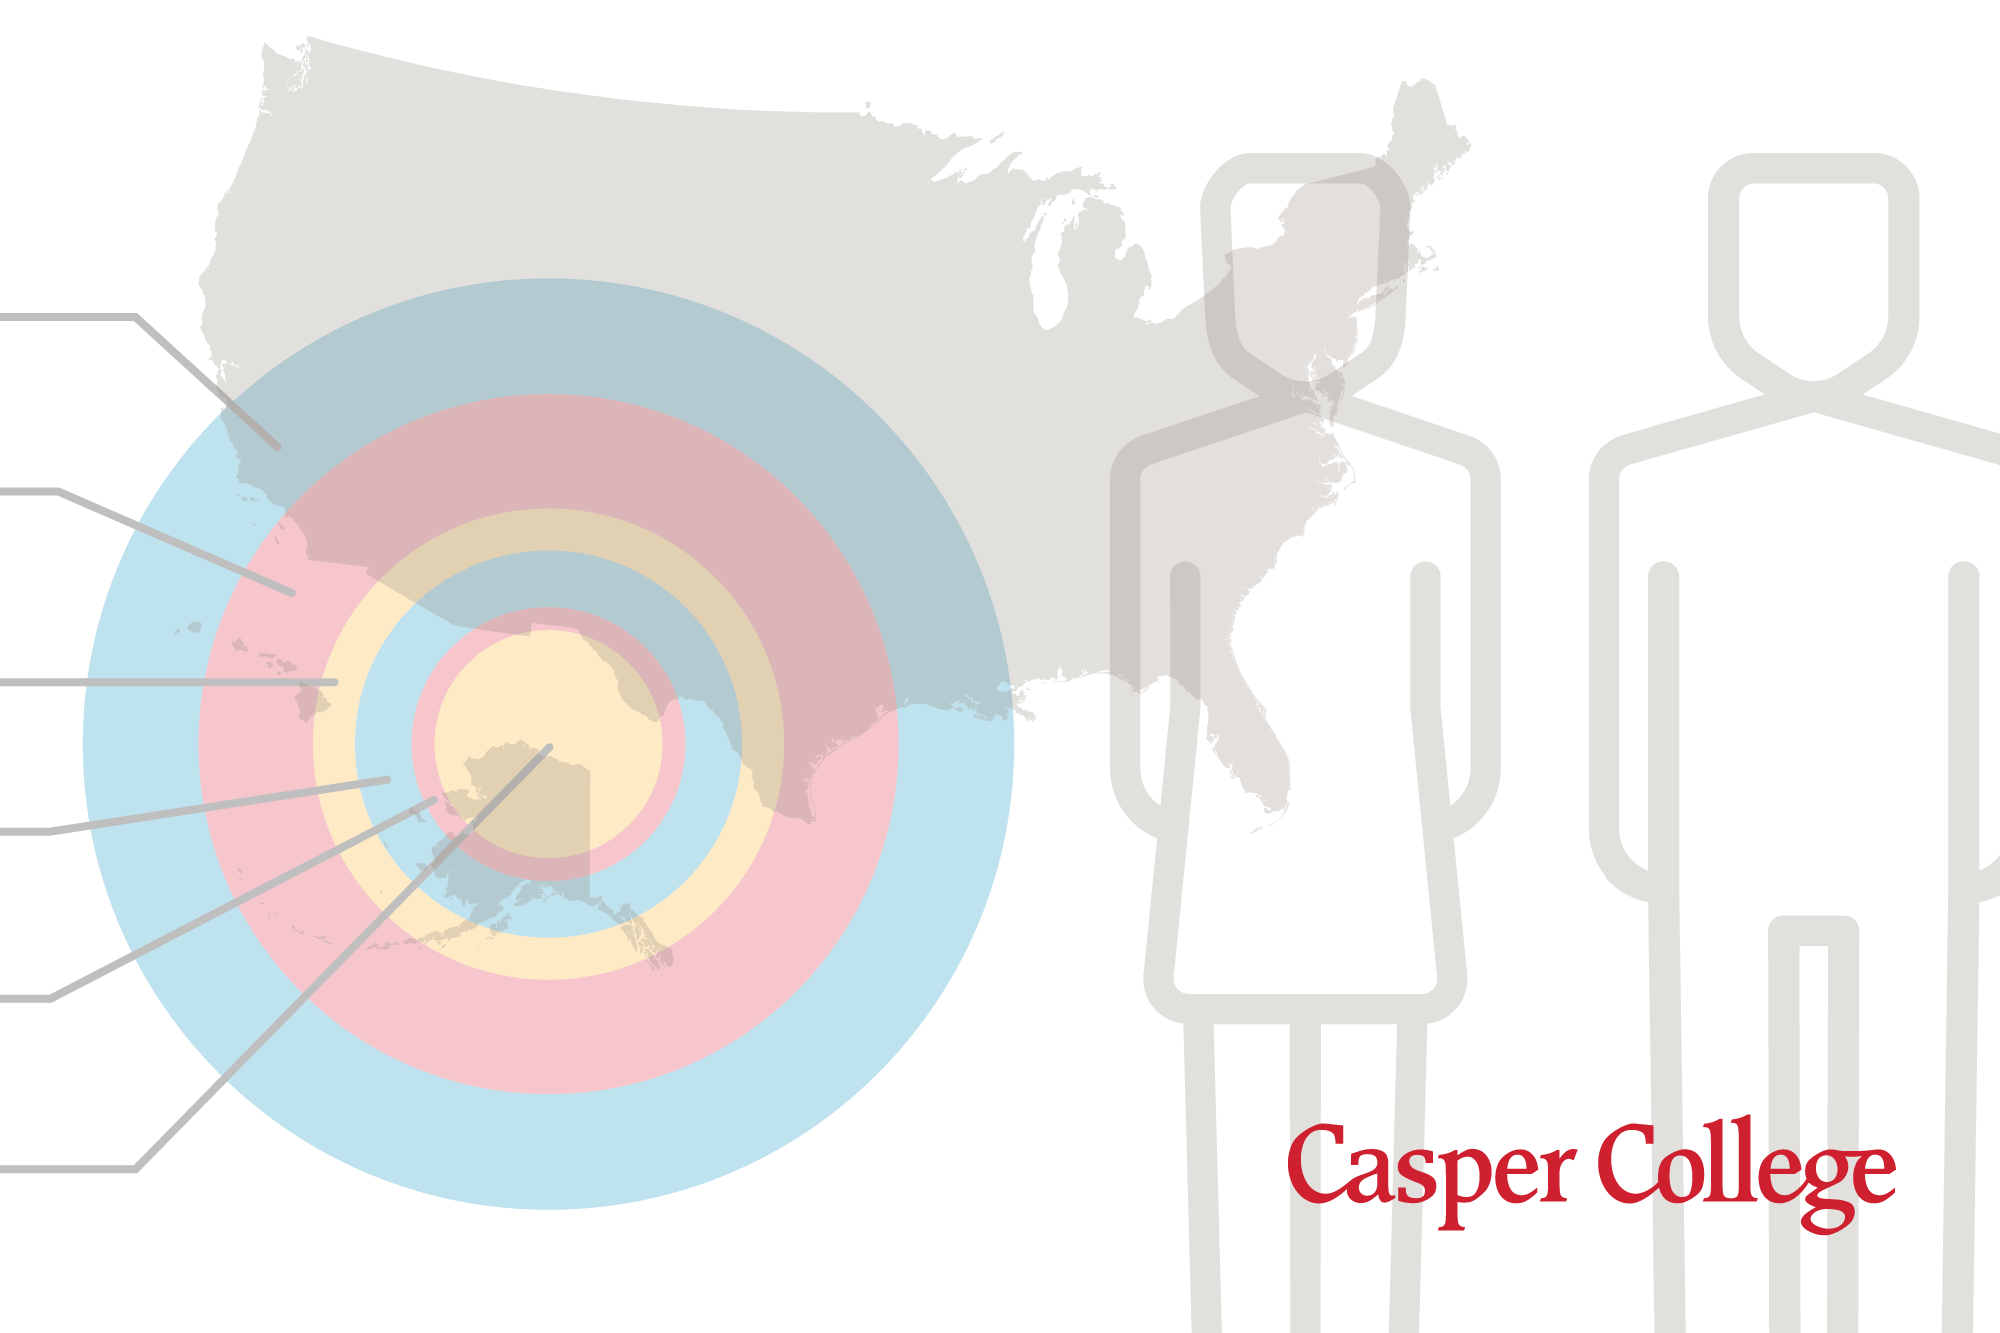 Drawing of the map of the United States, two outlines of people and a bullseye.